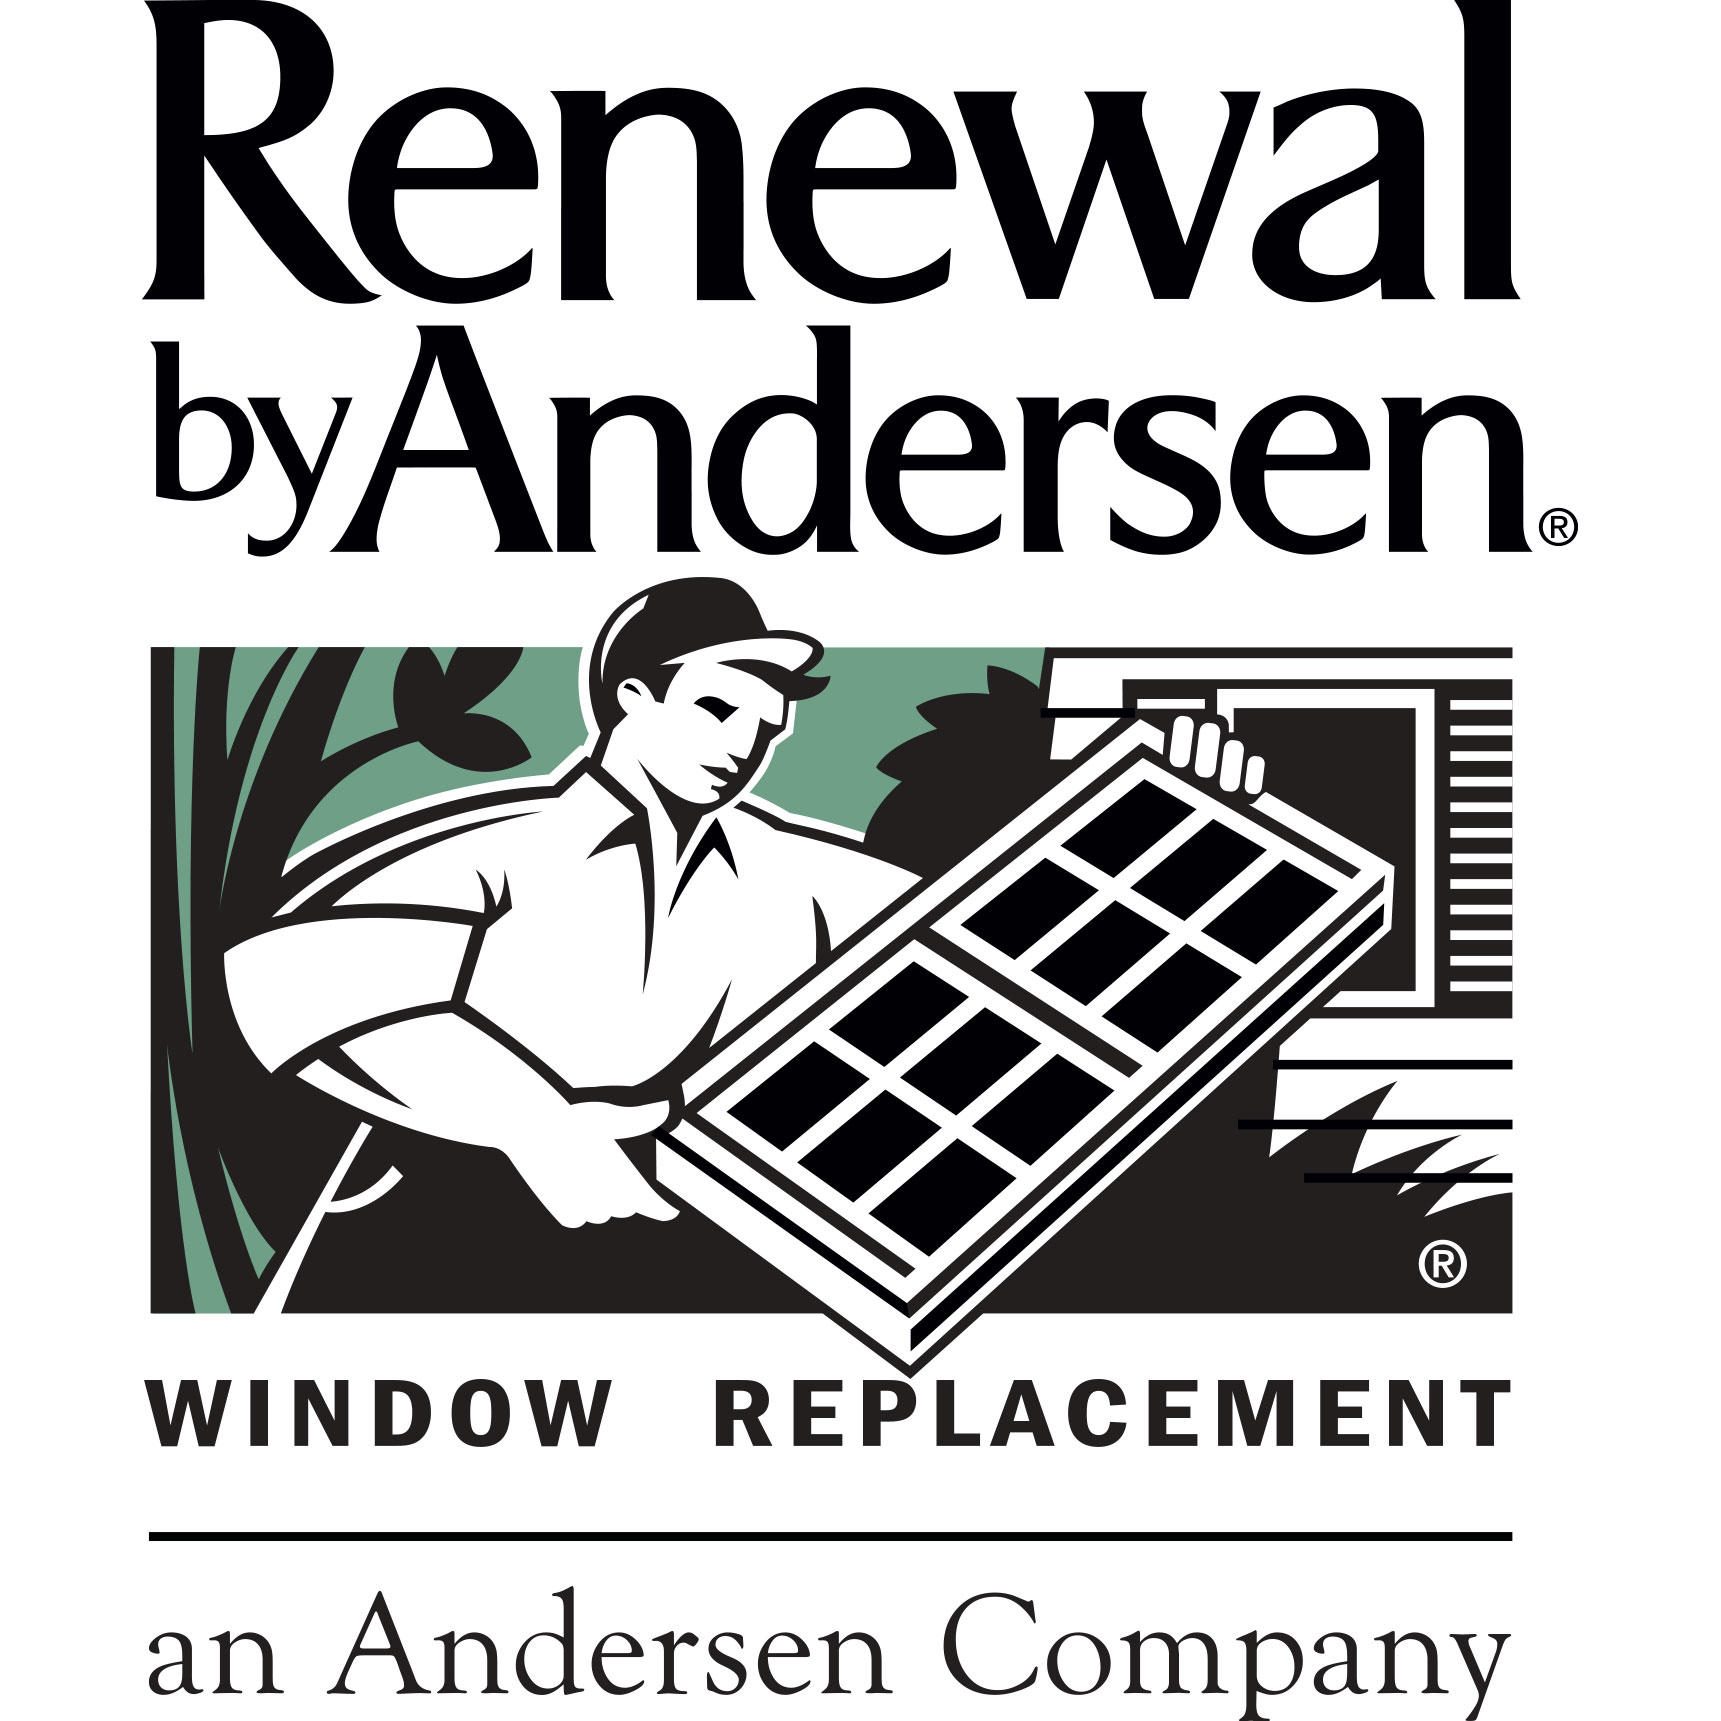 Renewal by Andersen of Alaska